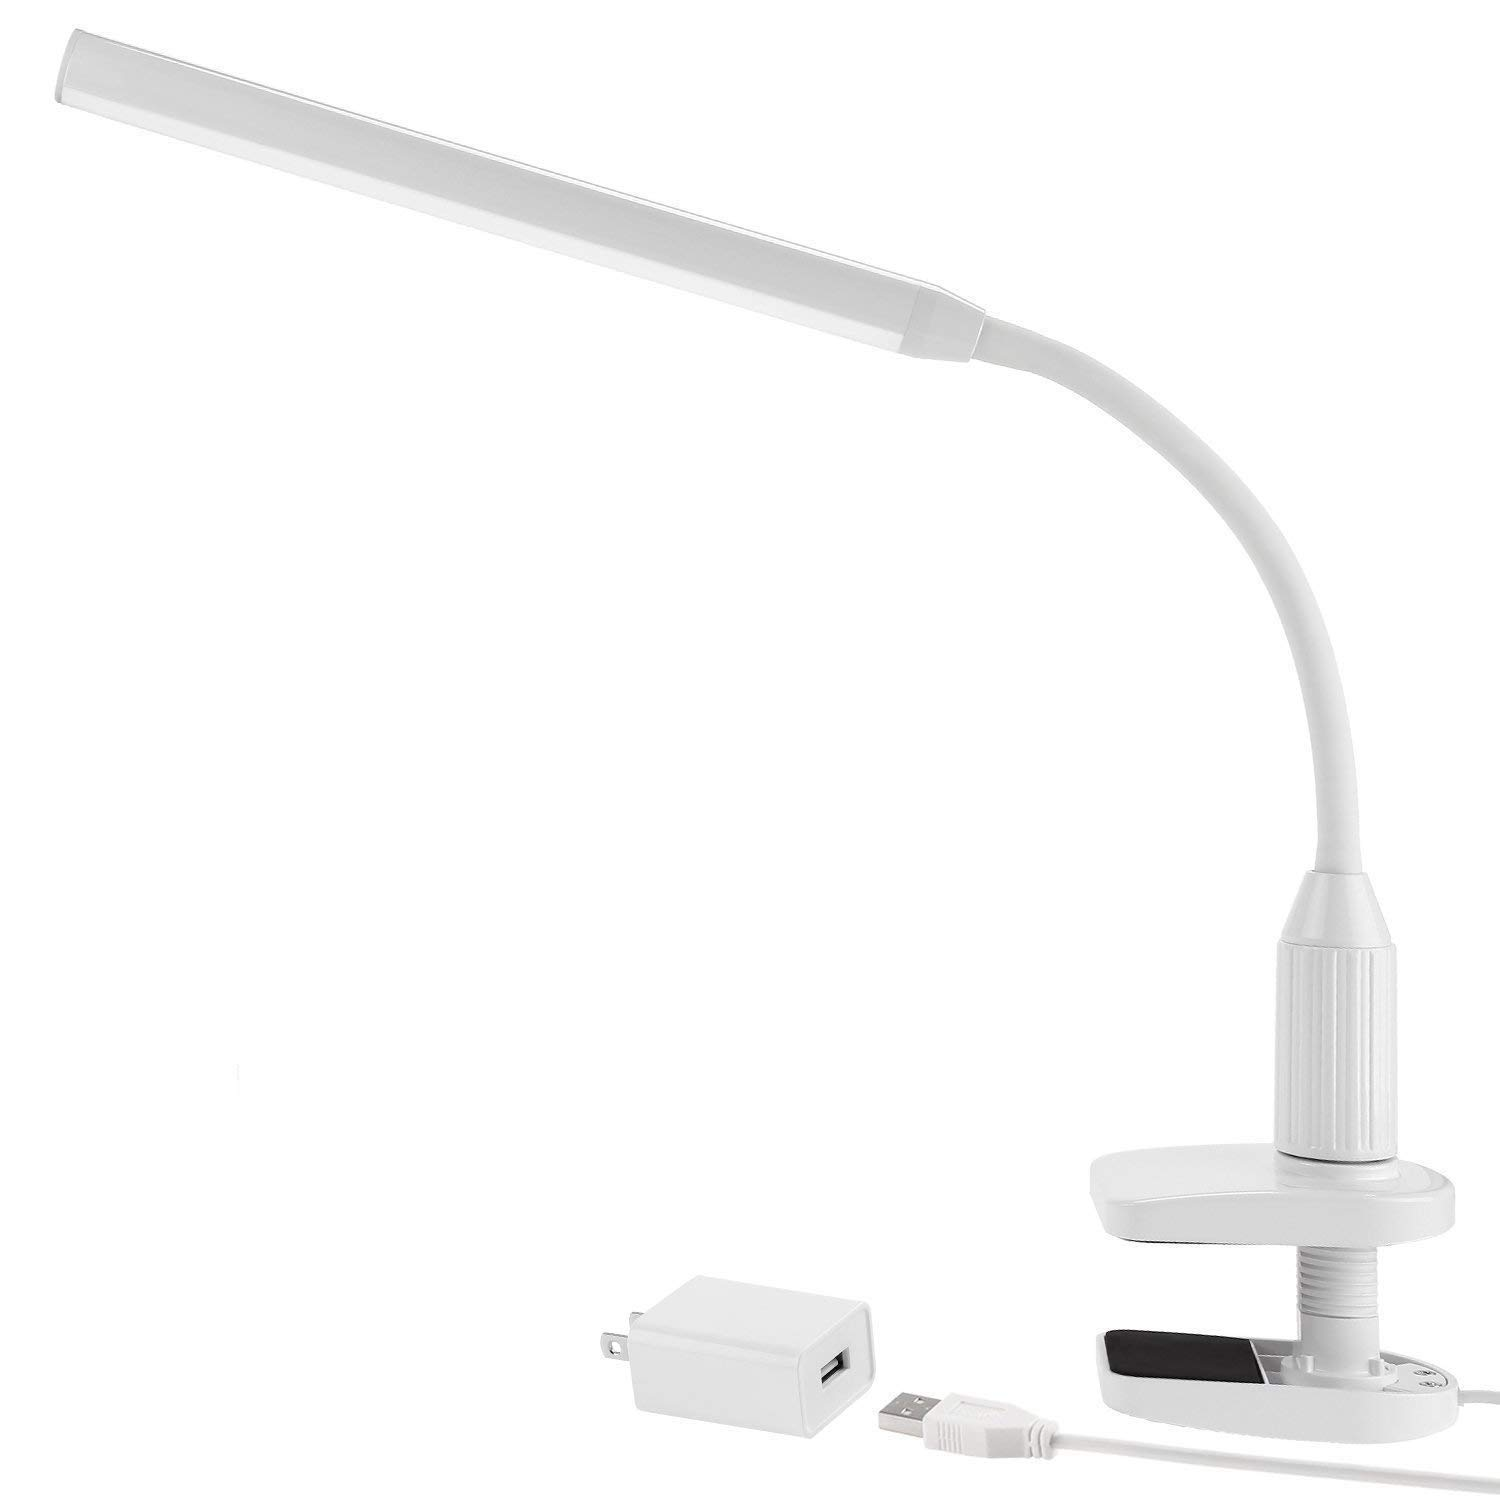 Torchstar 24 LEDs Dimmable Flexible Gooseneck Clamp Desk Lamp Eye-Care Touch Sensitive 5W Light, Memory Function, USB Charger + Power Adapter, 50000 hours Lifespan & 2 Years Warranty (White) ODCDEK-SD40WHT